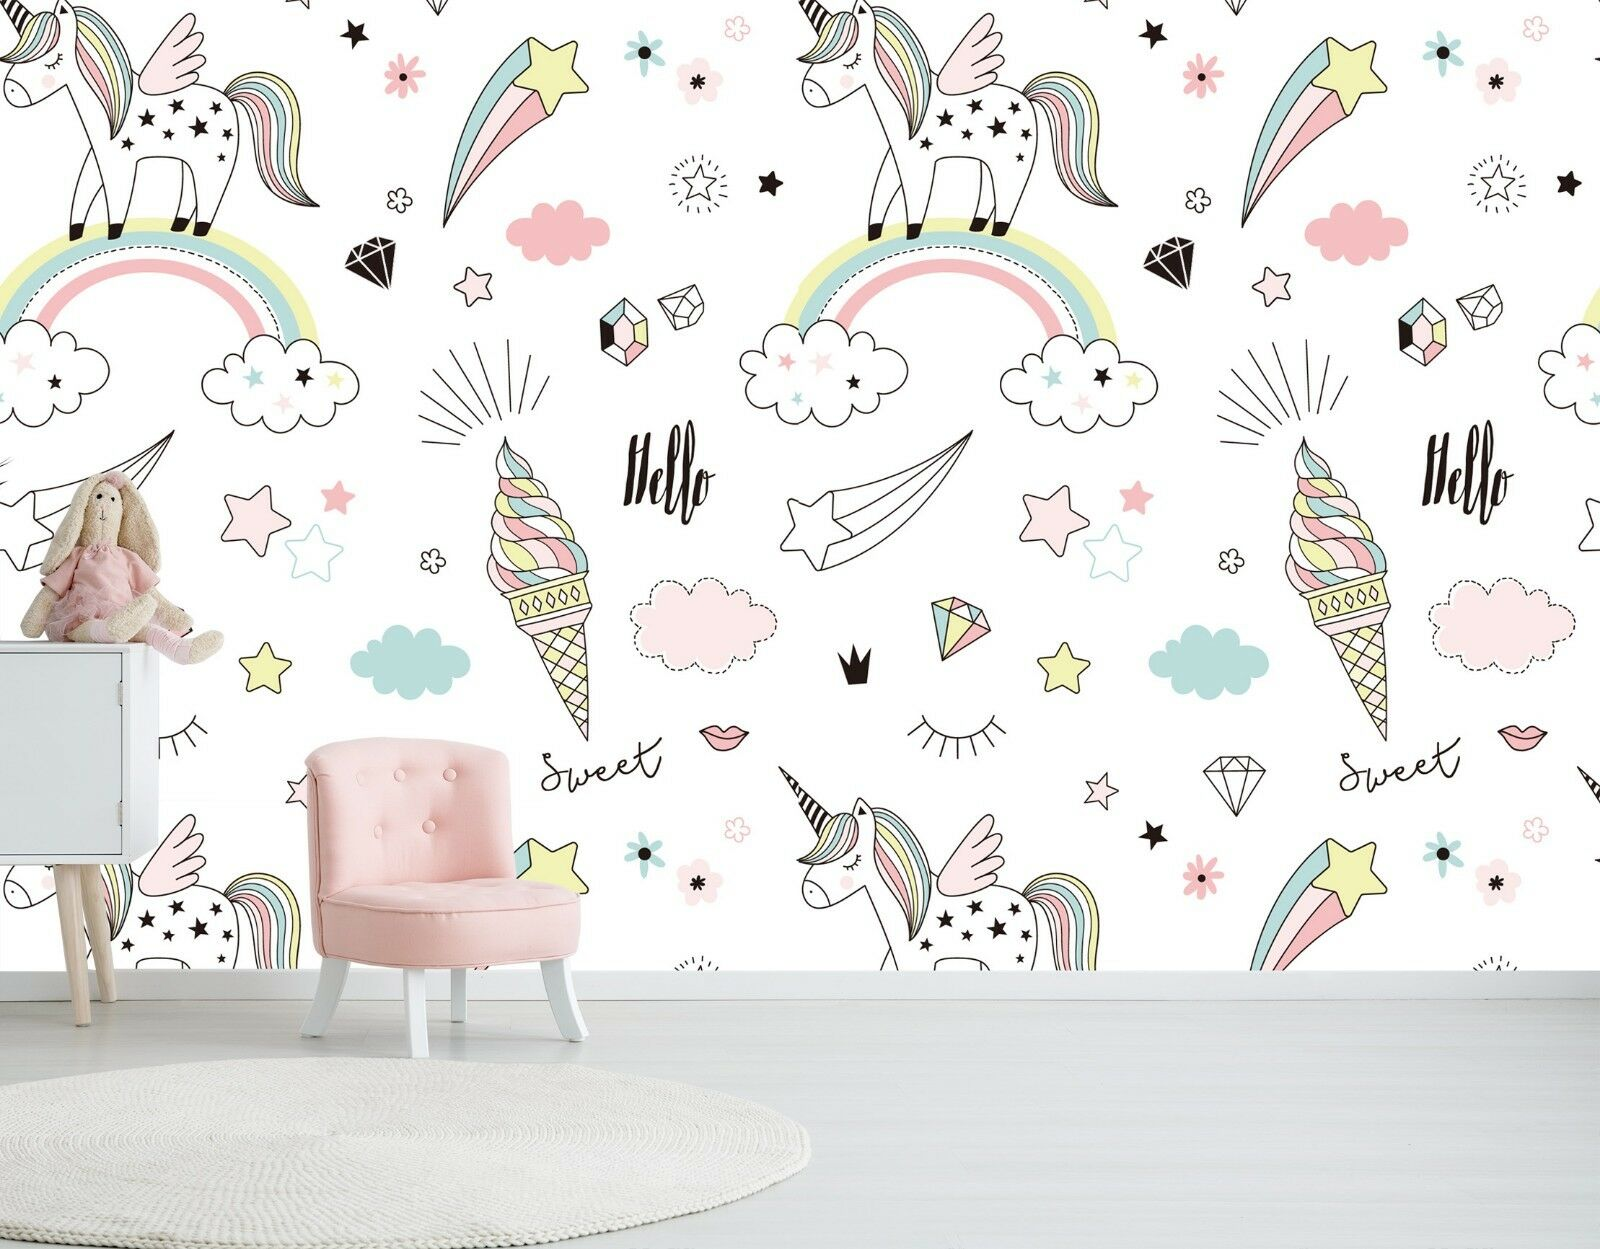 3D Rainbow Unicorn 39 Wall Paper Exclusive MXY Wallpaper Mural Decal Indoor